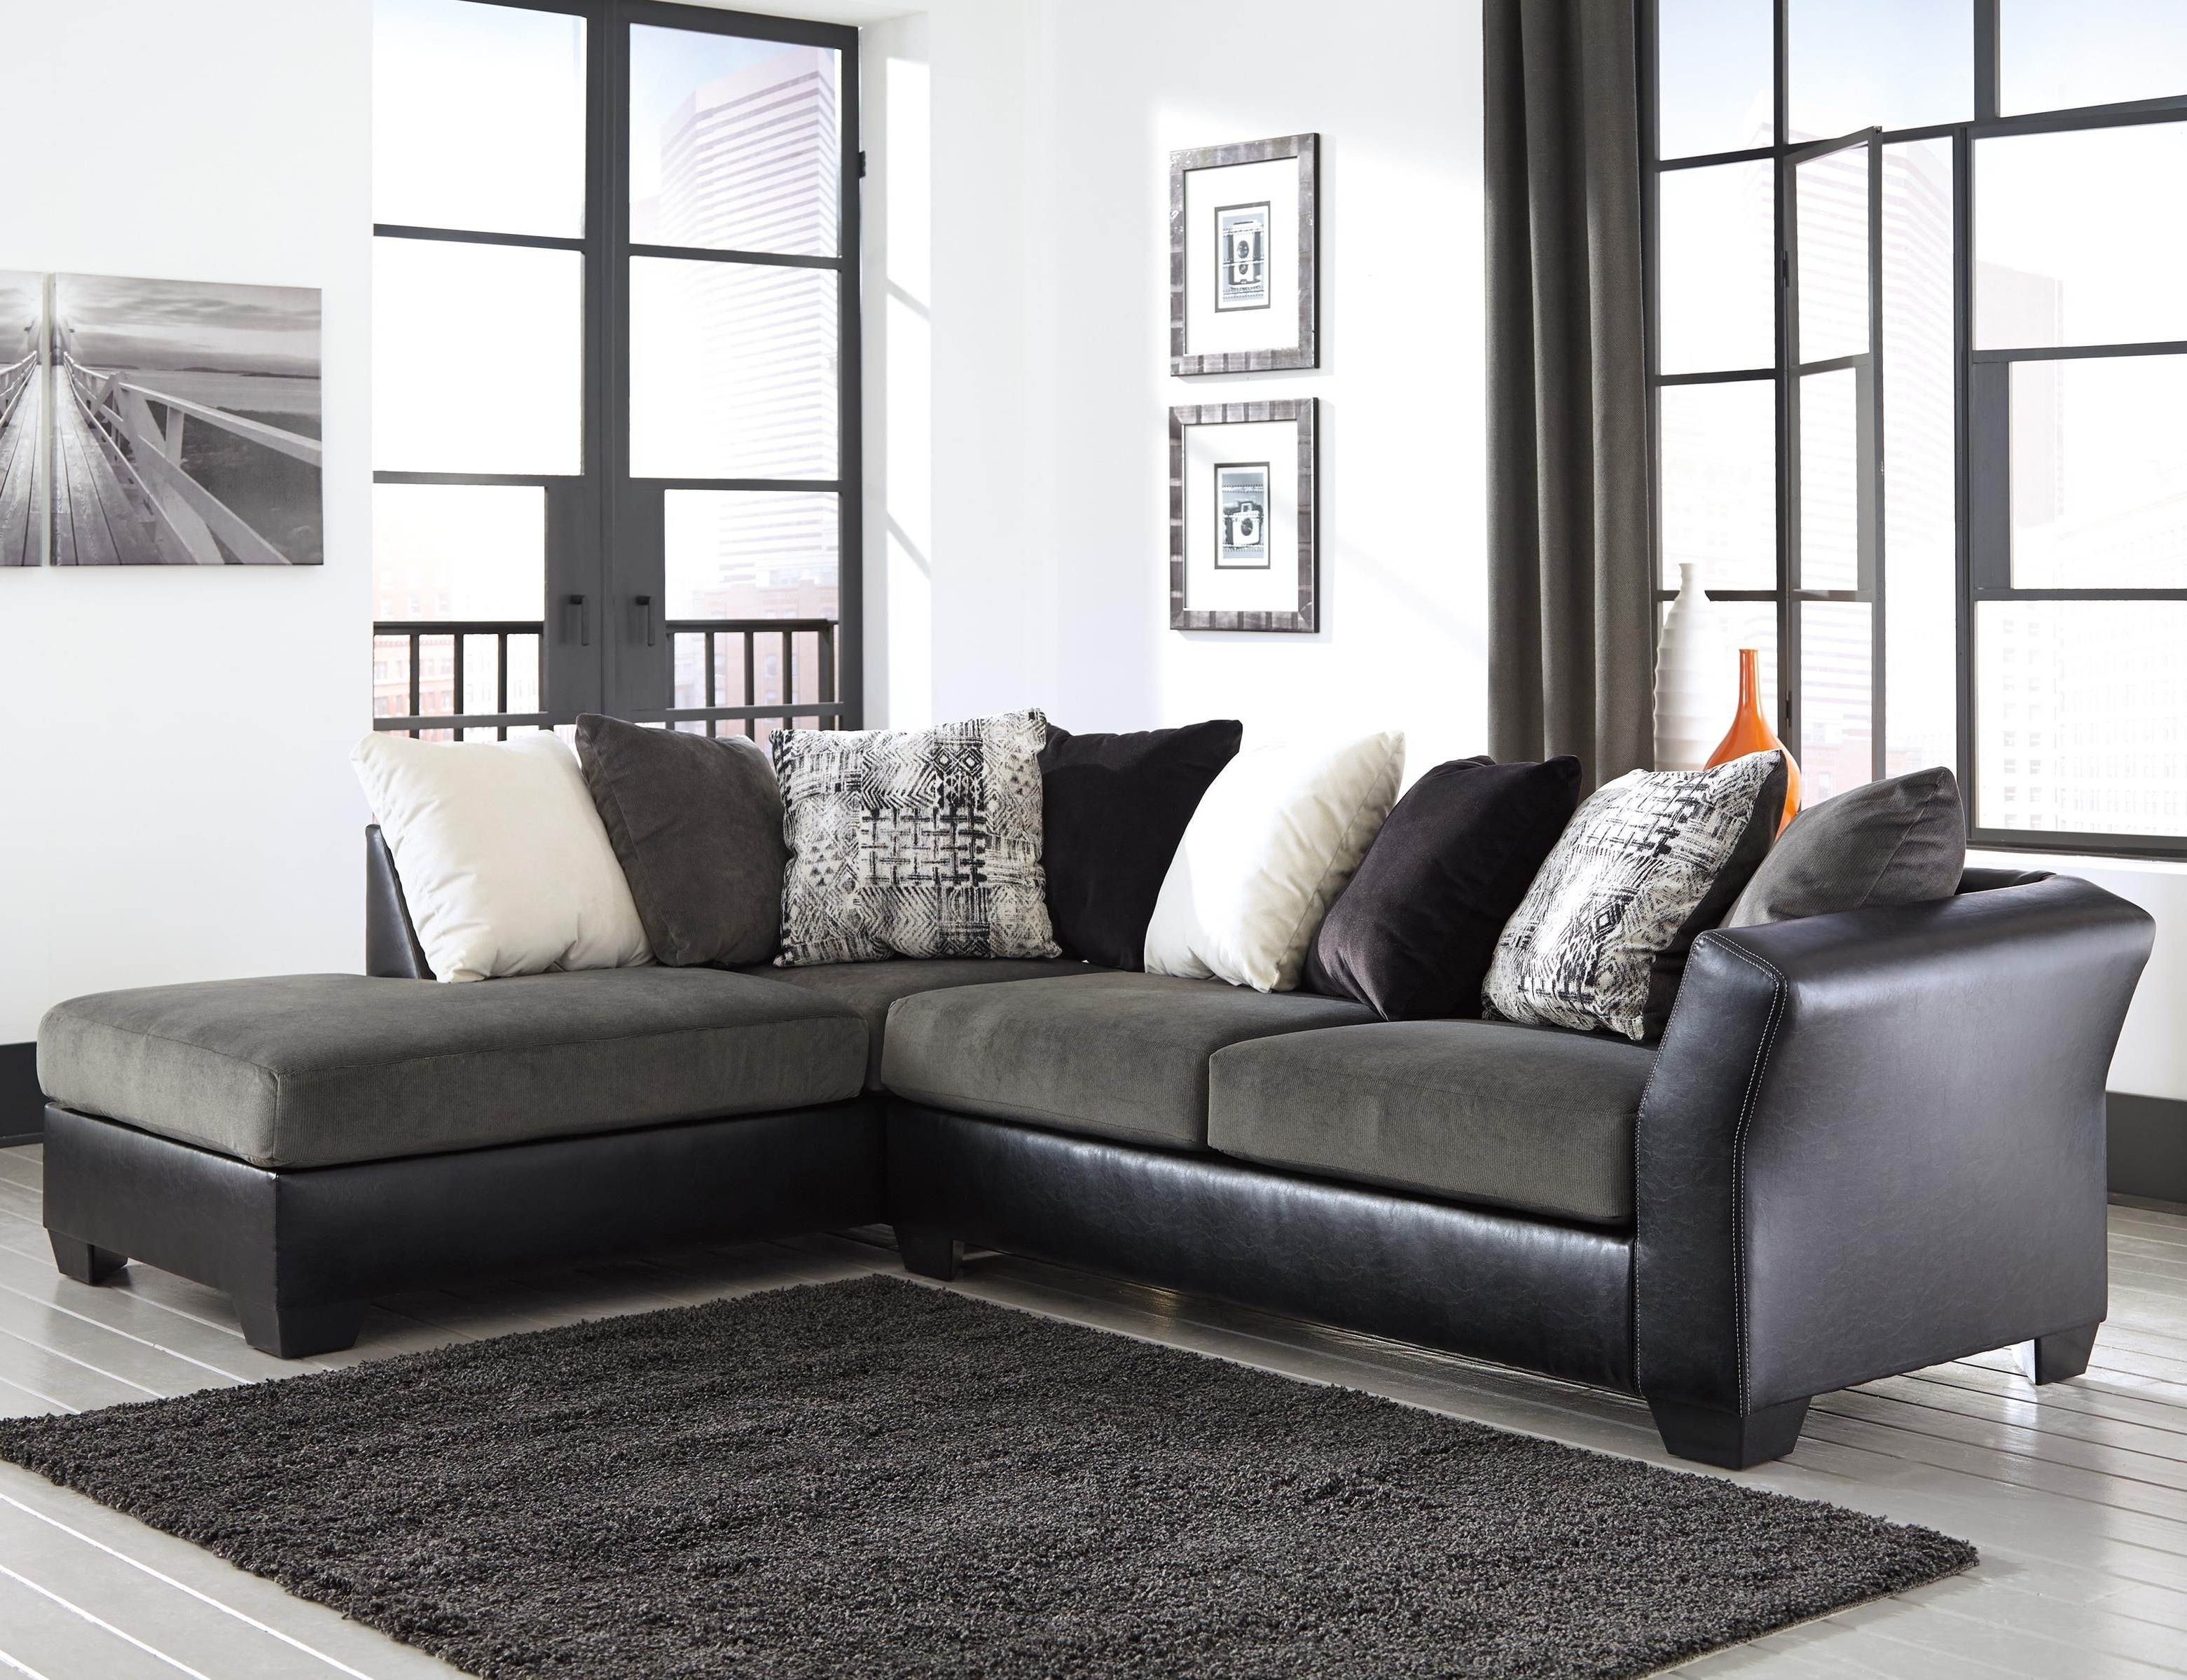 Armant 2 Piece Sectional With Right Chaisesignature Design Regarding Favorite Eau Claire Wi Sectional Sofas (View 3 of 15)